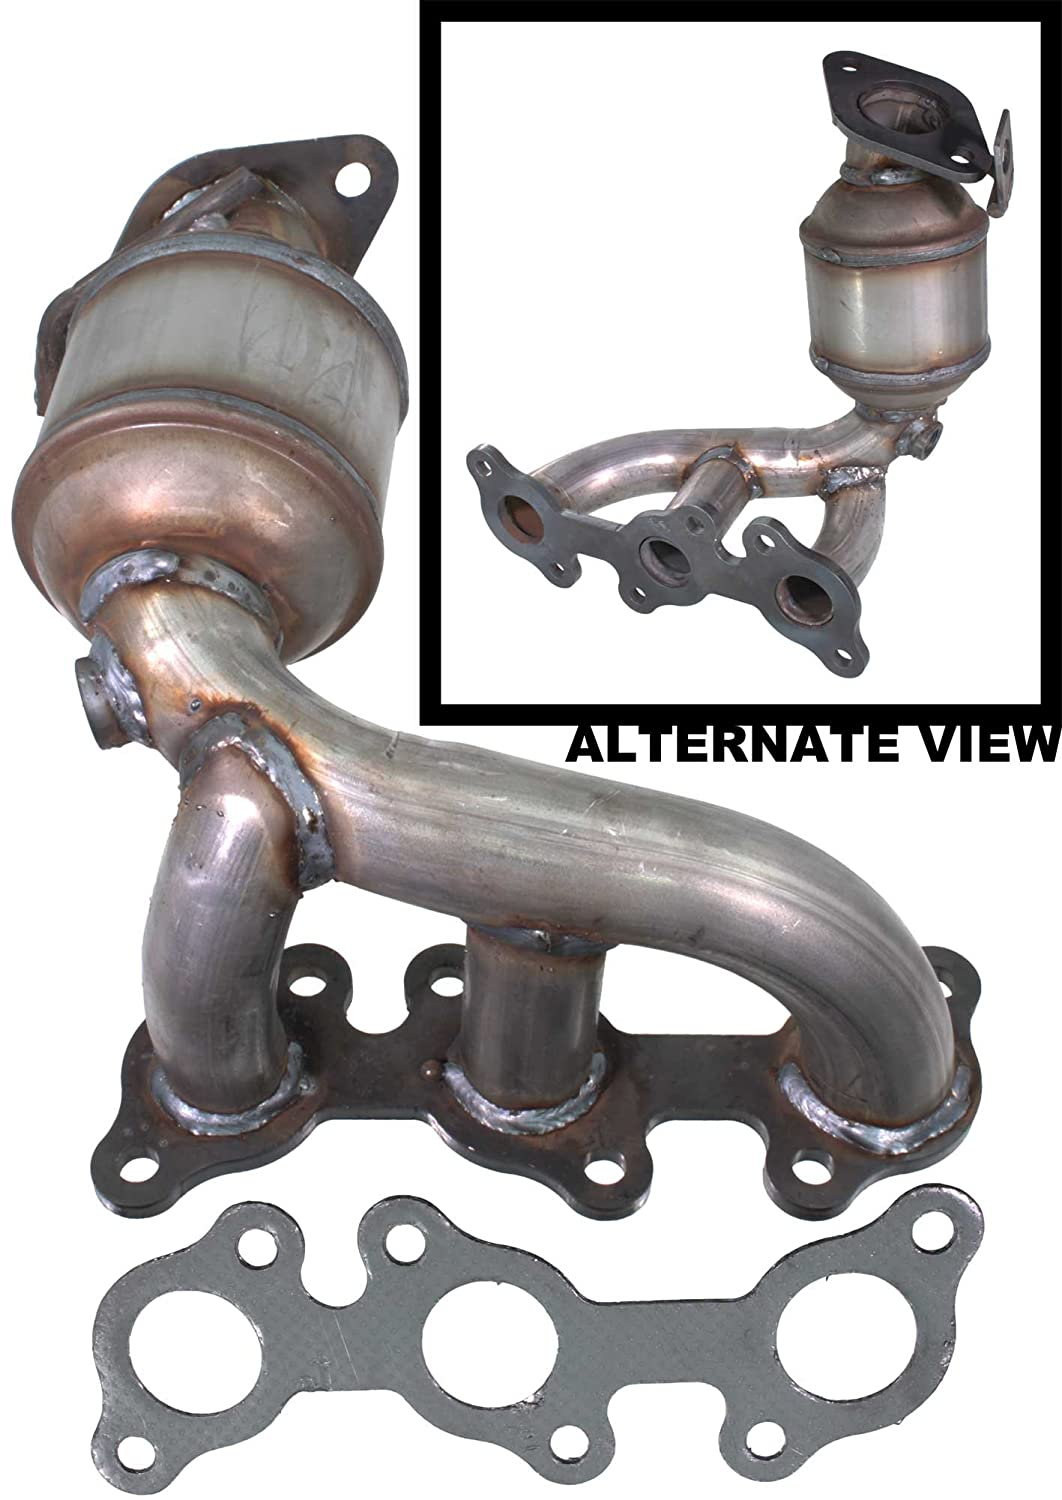 Apdty 112866 Exhaust Manifold Catalytic Converter Fits Saturn Vue System Front 30l V6 1999 2001 Lexus Es300 1998 2004 Toyota Avalon Camry